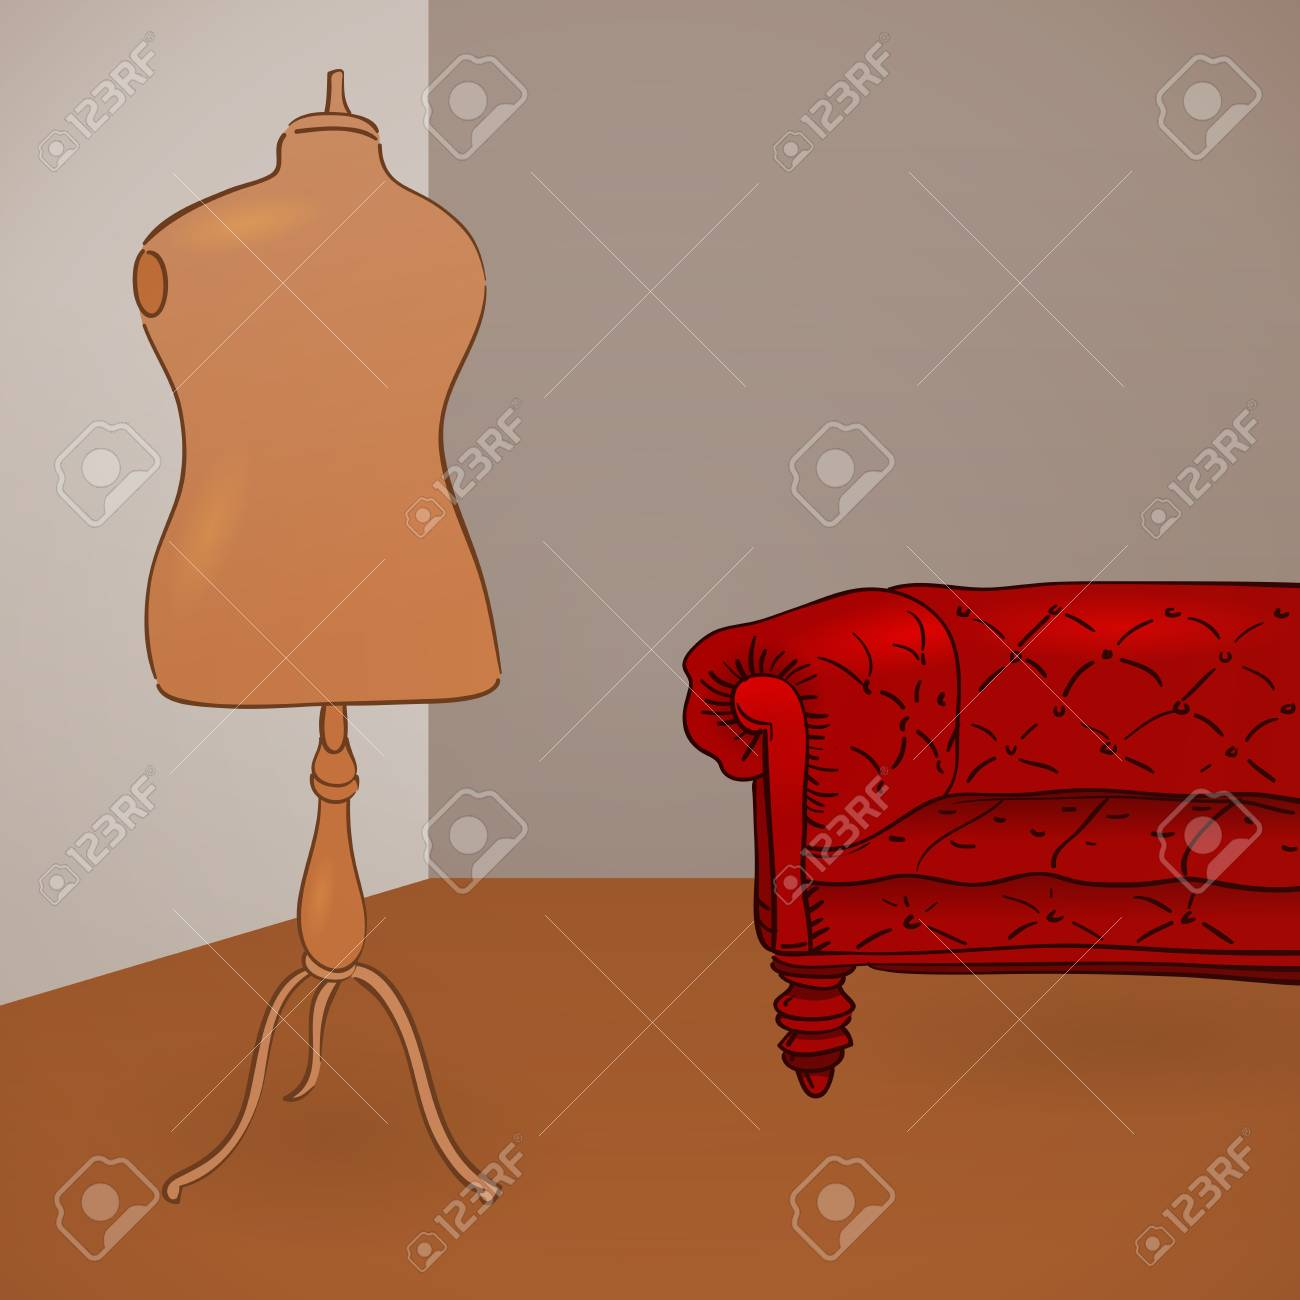 Clothing Mannequin Illustration Stock Vector - 12711716